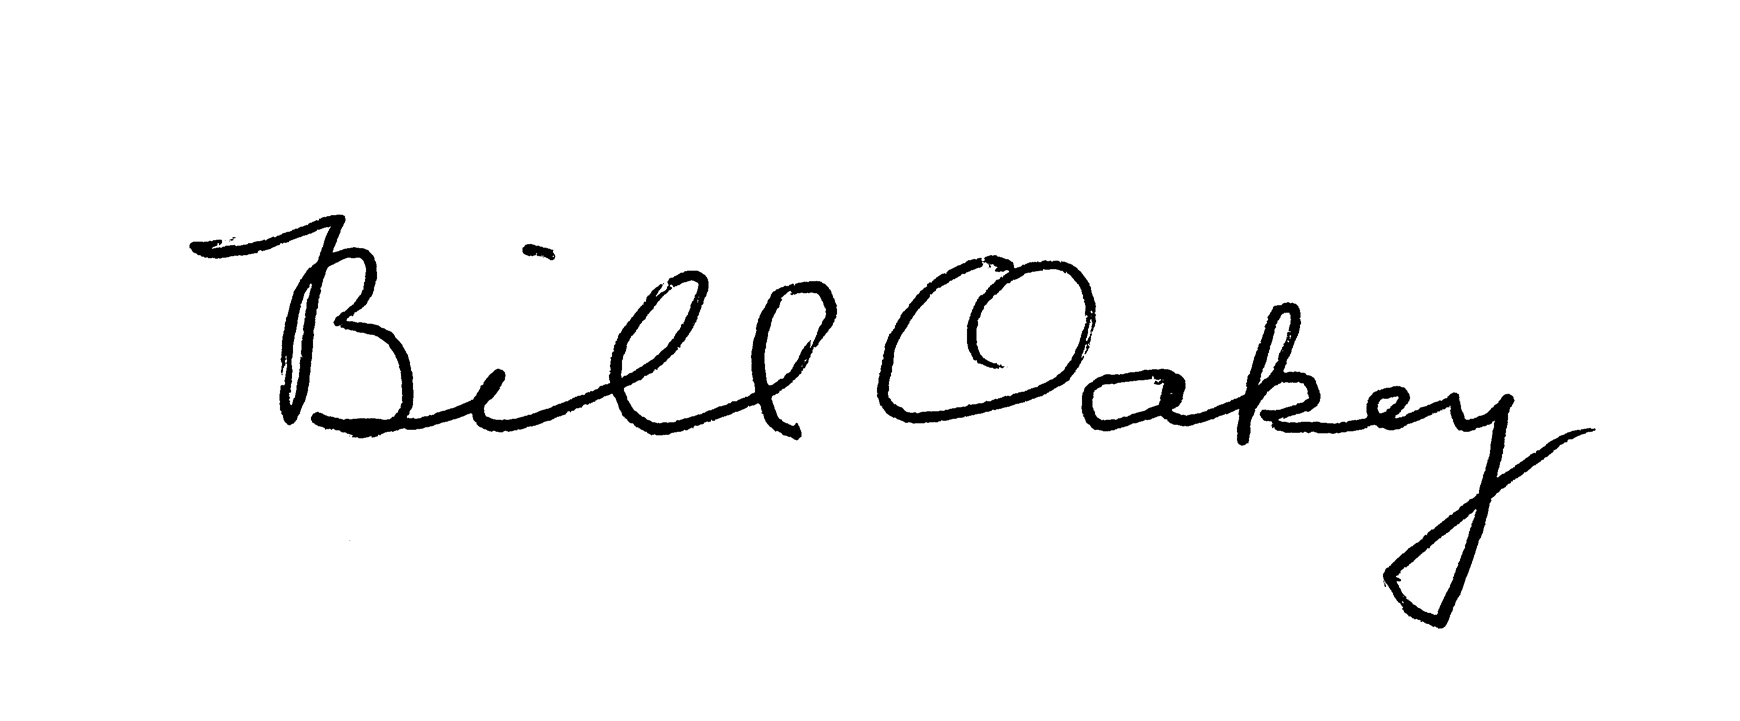 Bill Oakey's Signature